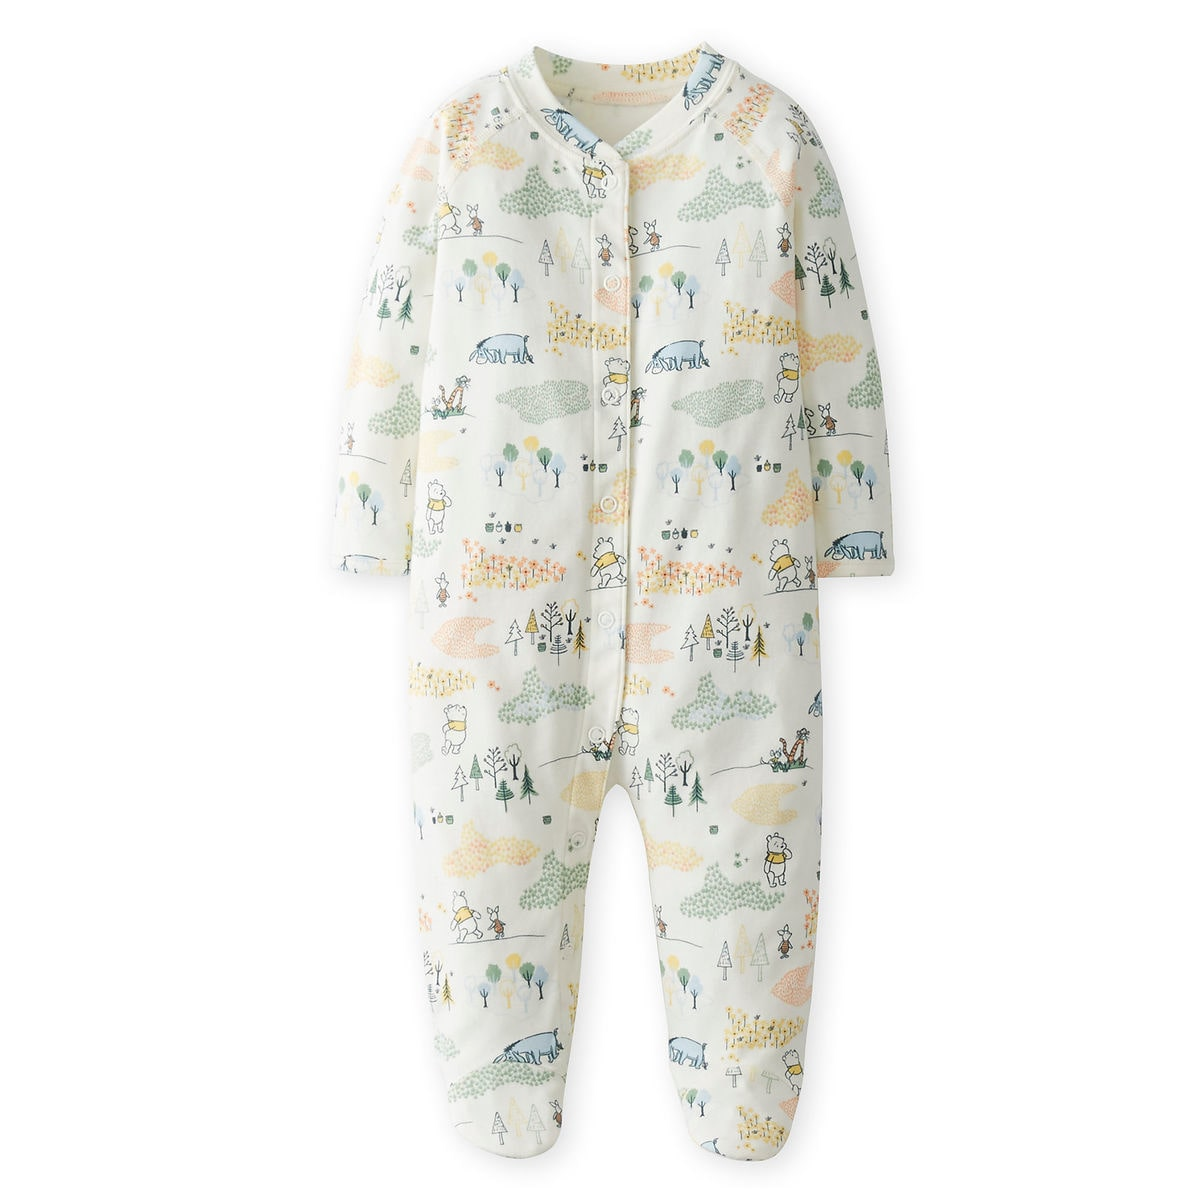 e0747d7aae80 Winnie the Pooh Sleeper for Baby by Hanna Andersson